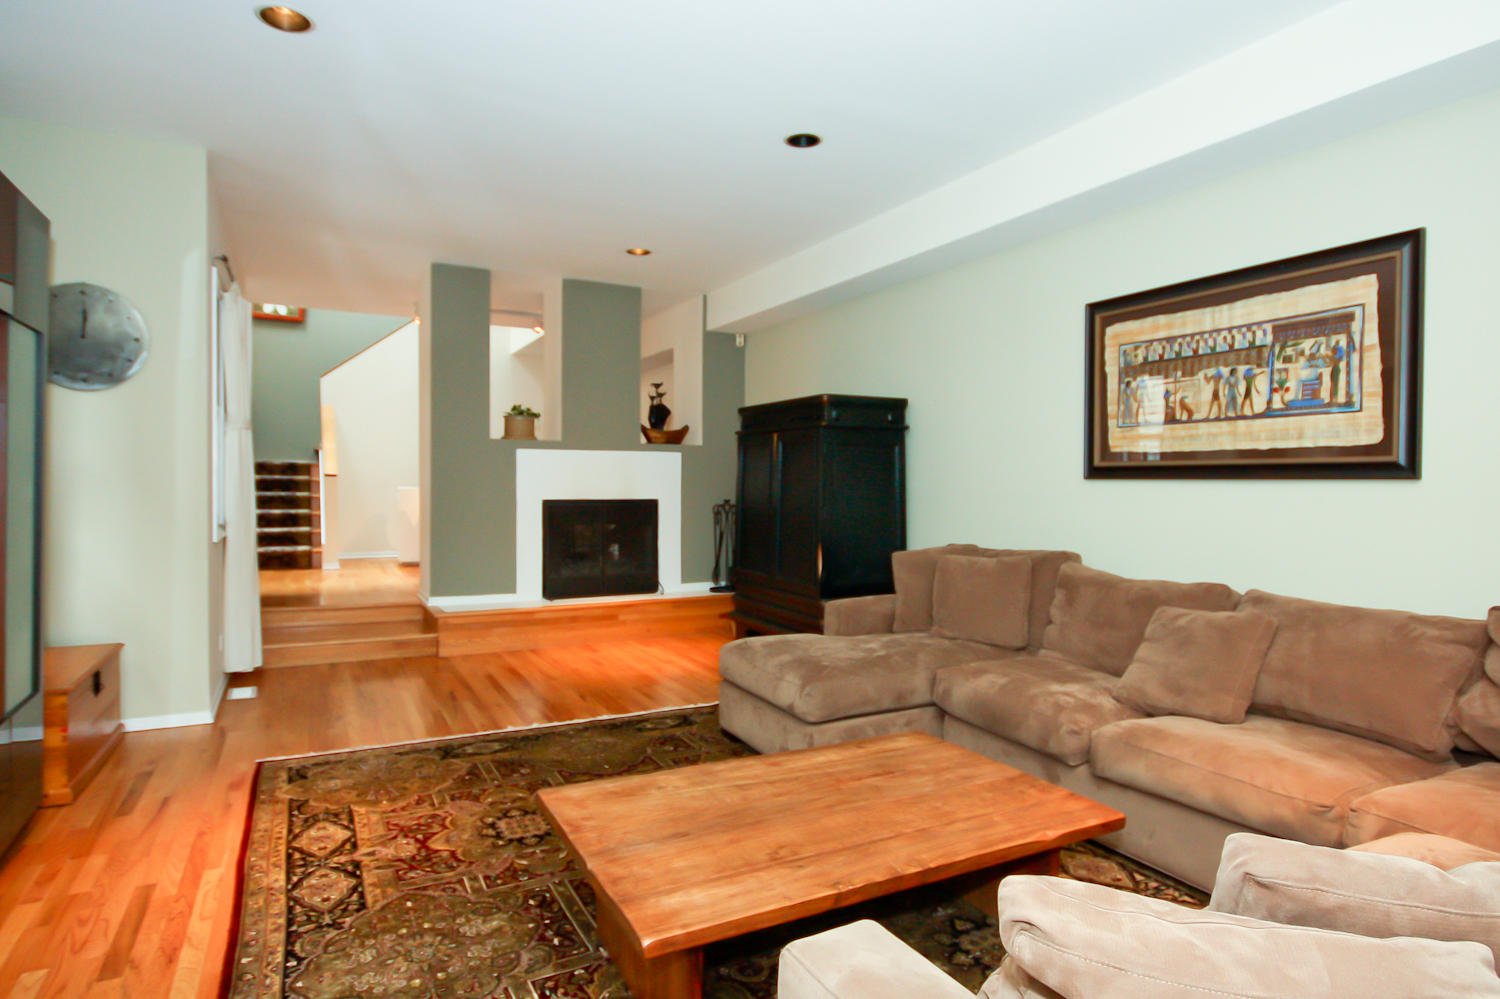 The Chicago Real Estate Local: New for Sale! Contemporary ...